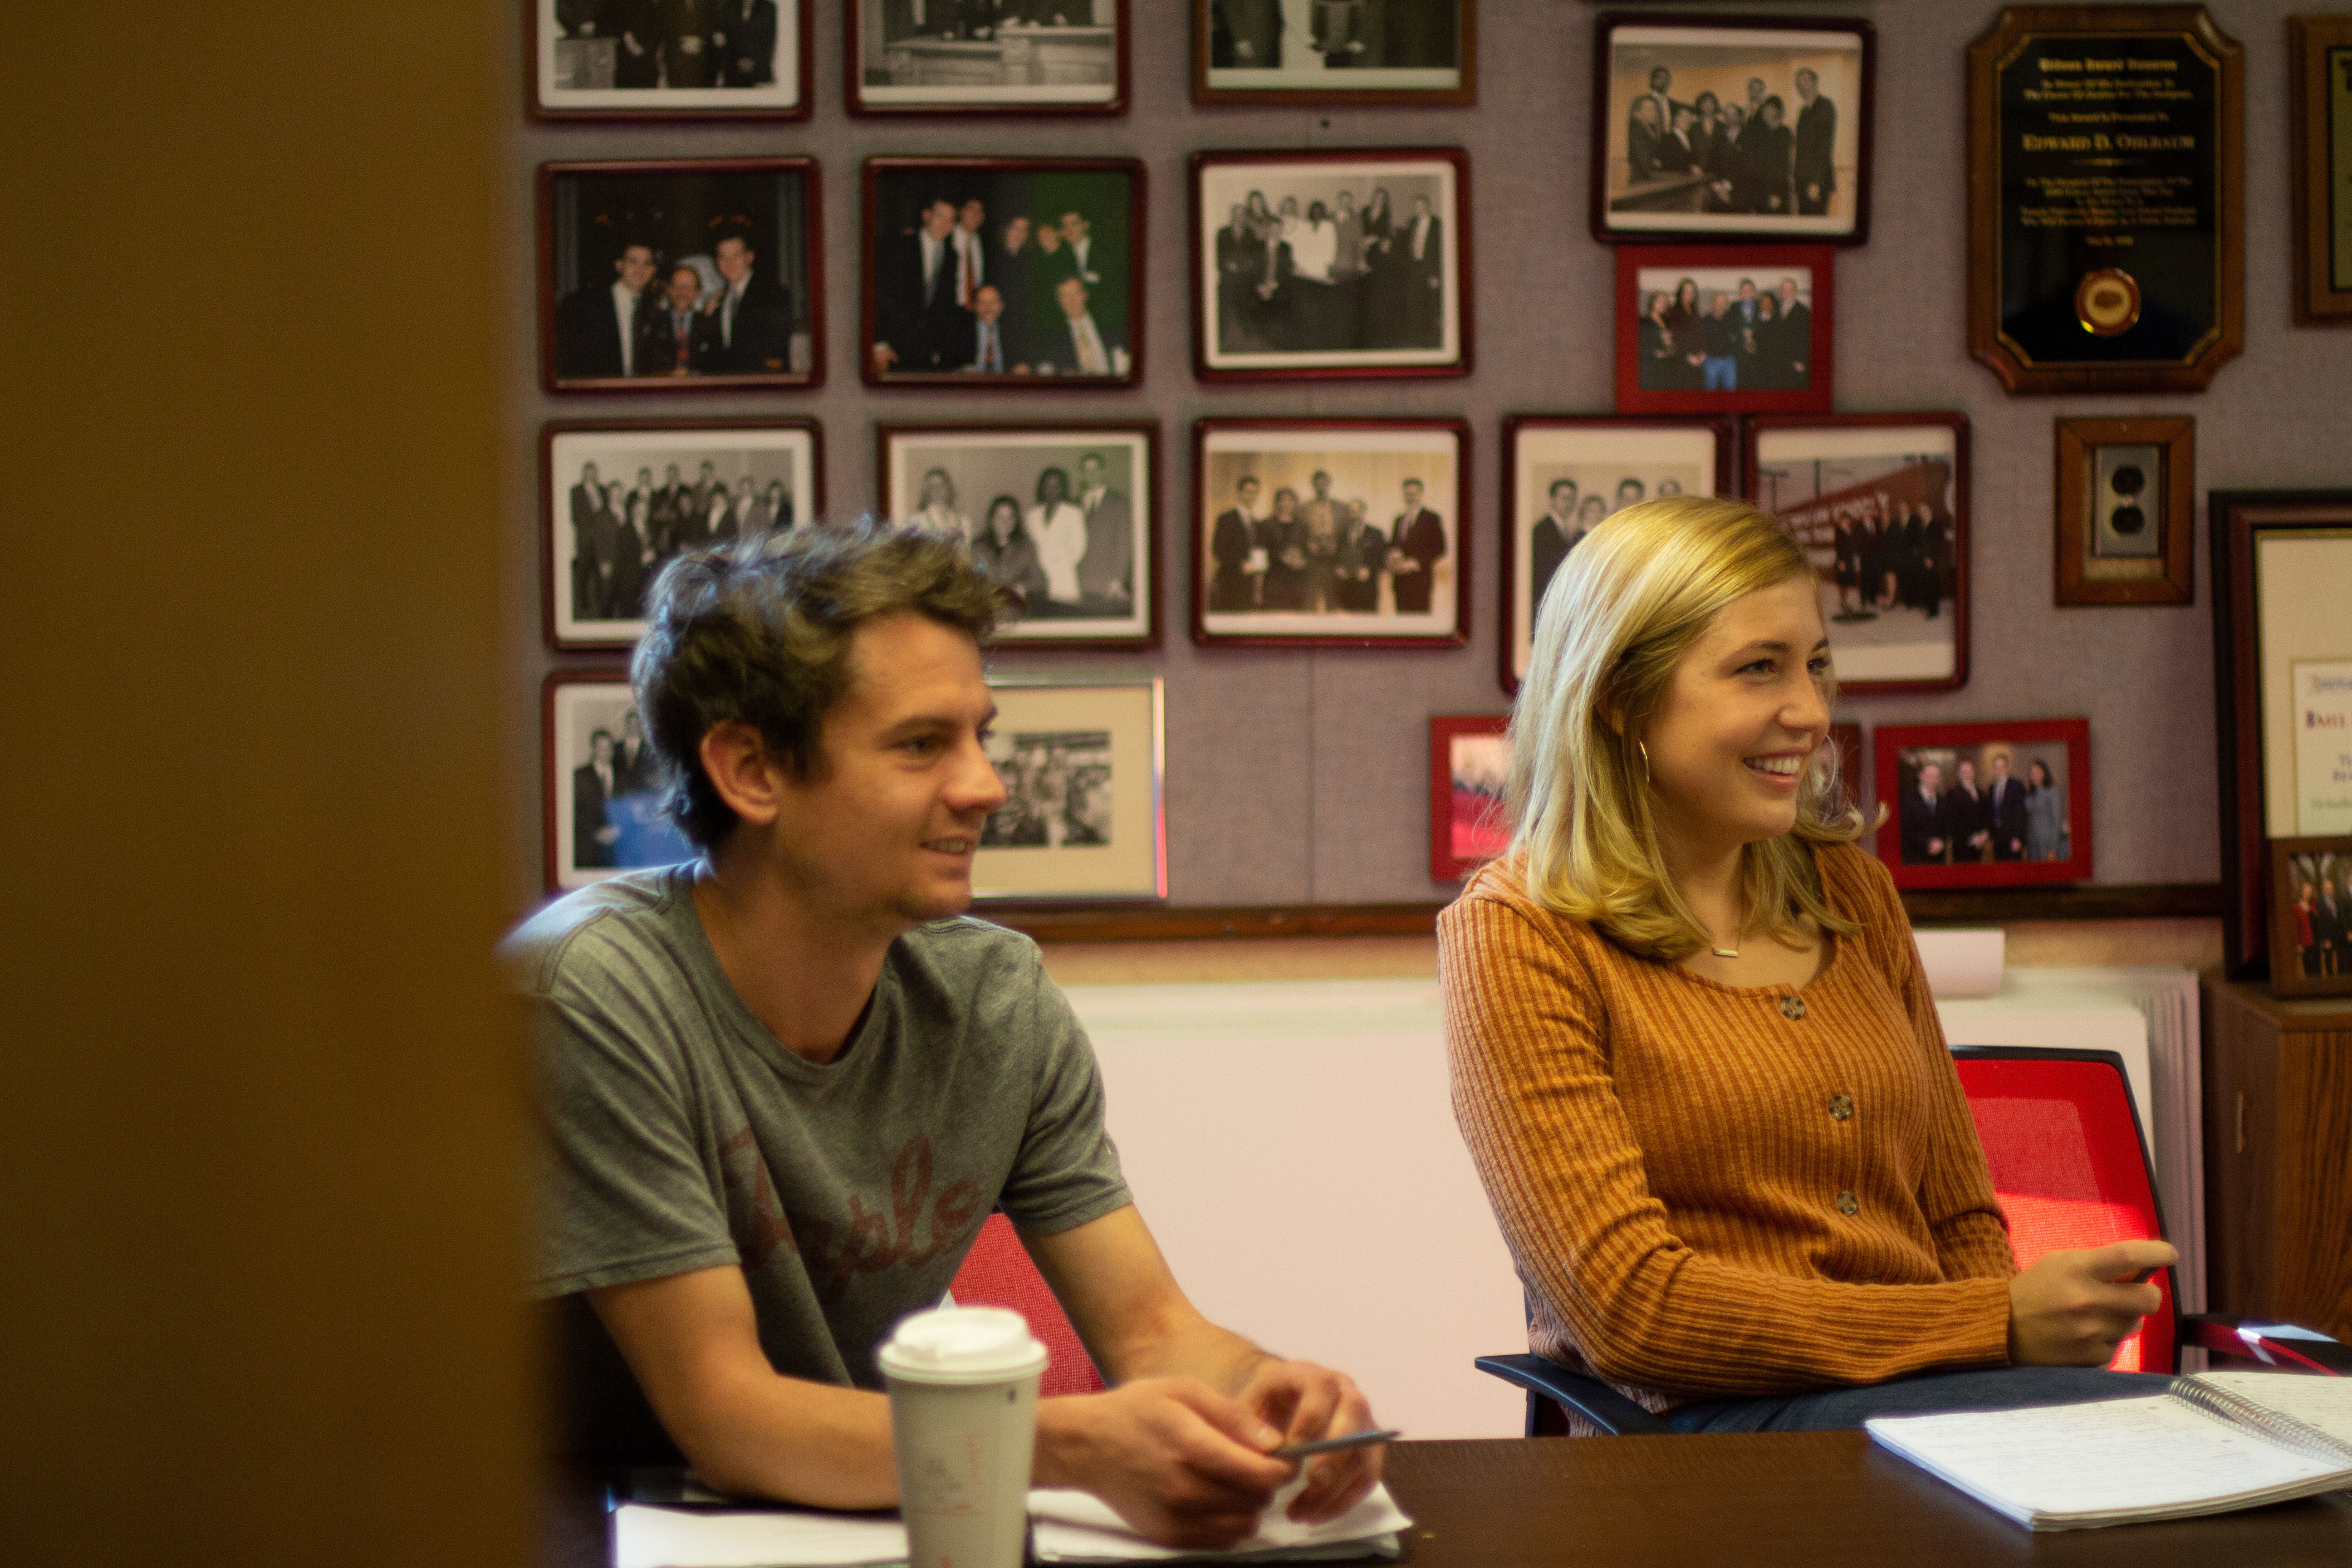 Temple Law Trial Team members Dan Craig LAW '21 and Lauren Doig LAW '21 practicing their Trial Advocacy skills in the Ohlbaum War Room in October of 2019.